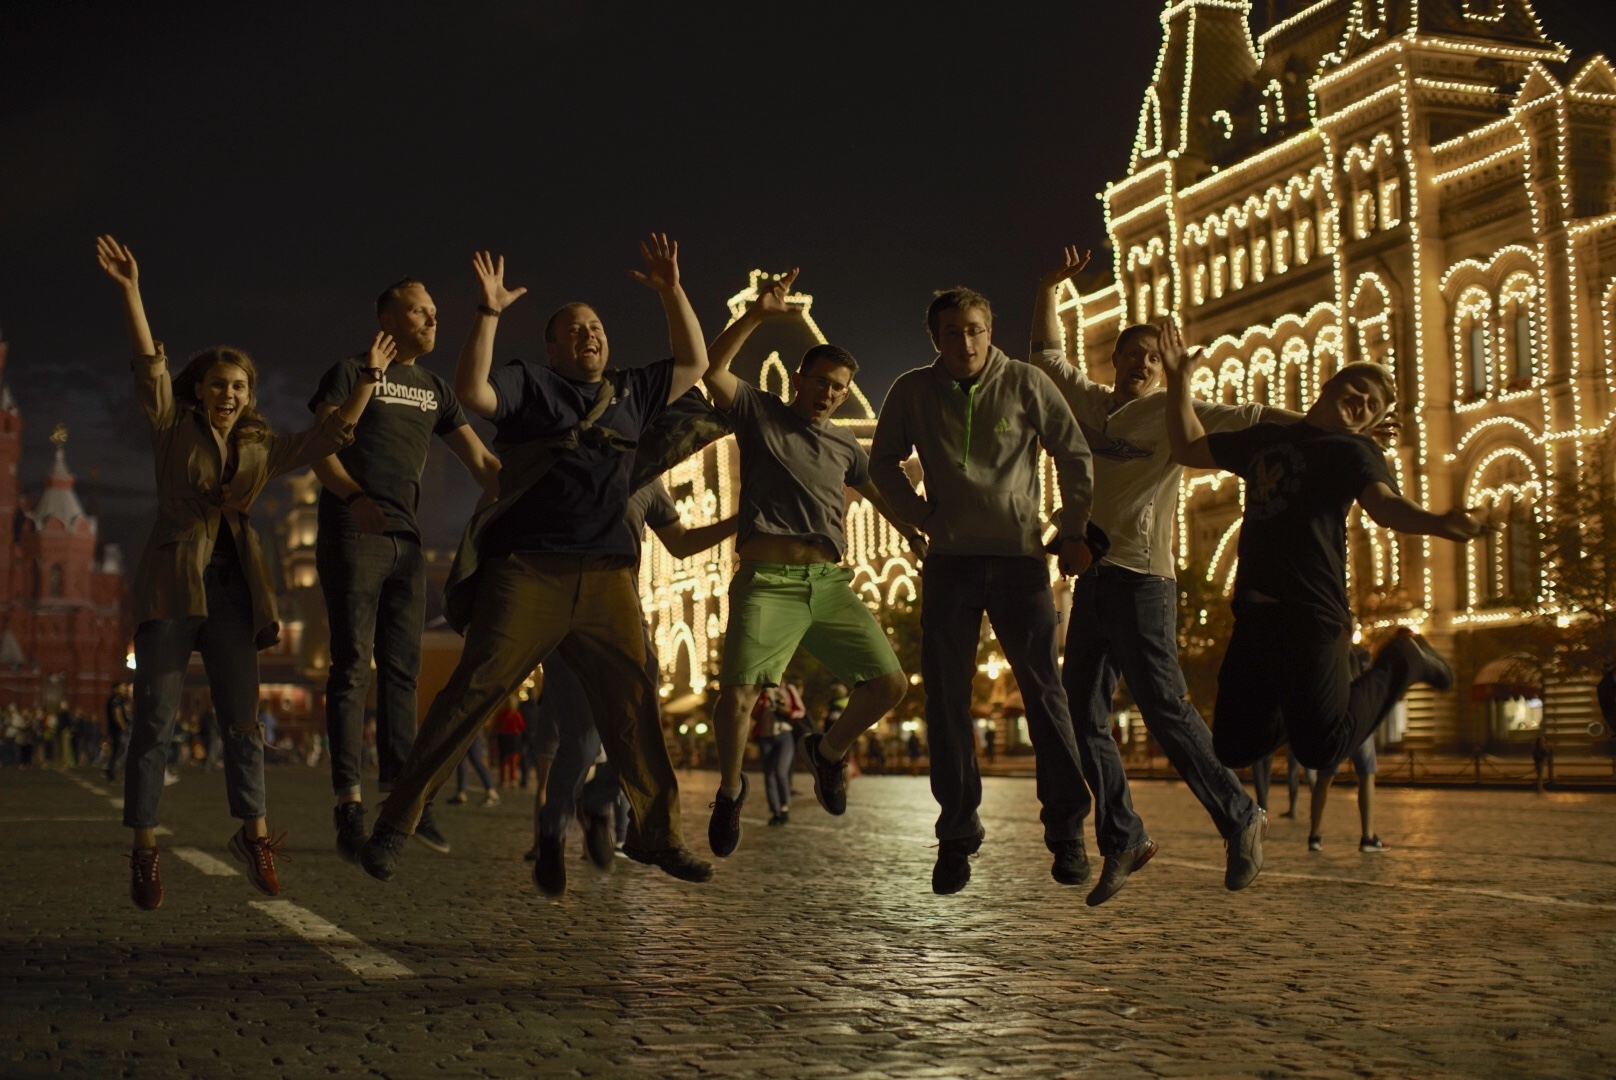 Late night fun in Red Square (for those that weren't sleeping!)